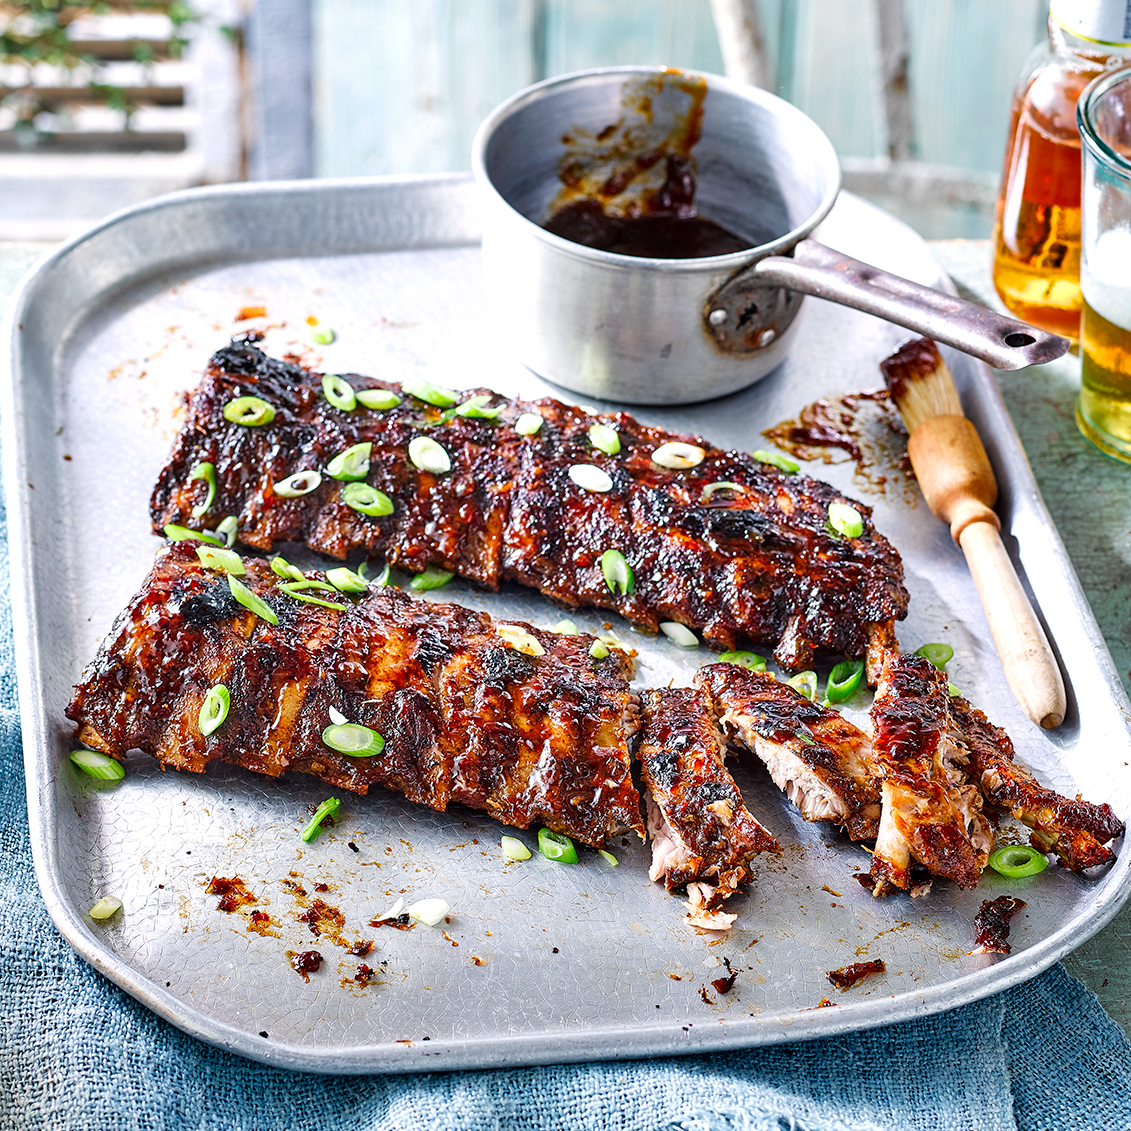 Sticky BBQ pork ribs